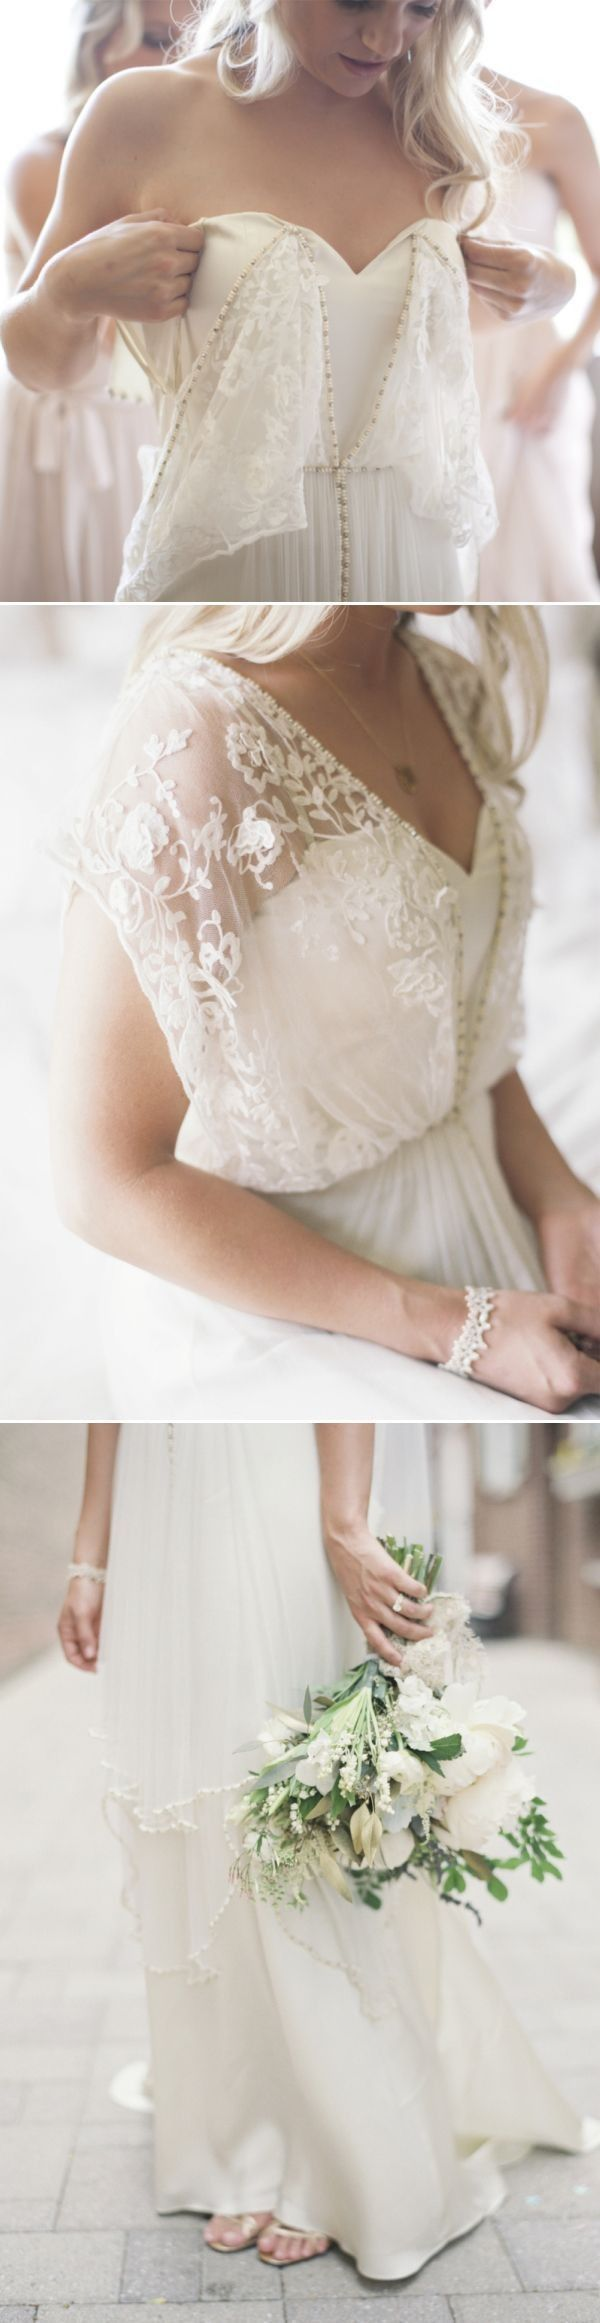 Top 20 Vintage Wedding Dresses for 2019 Trends – Oh Best Day Ever